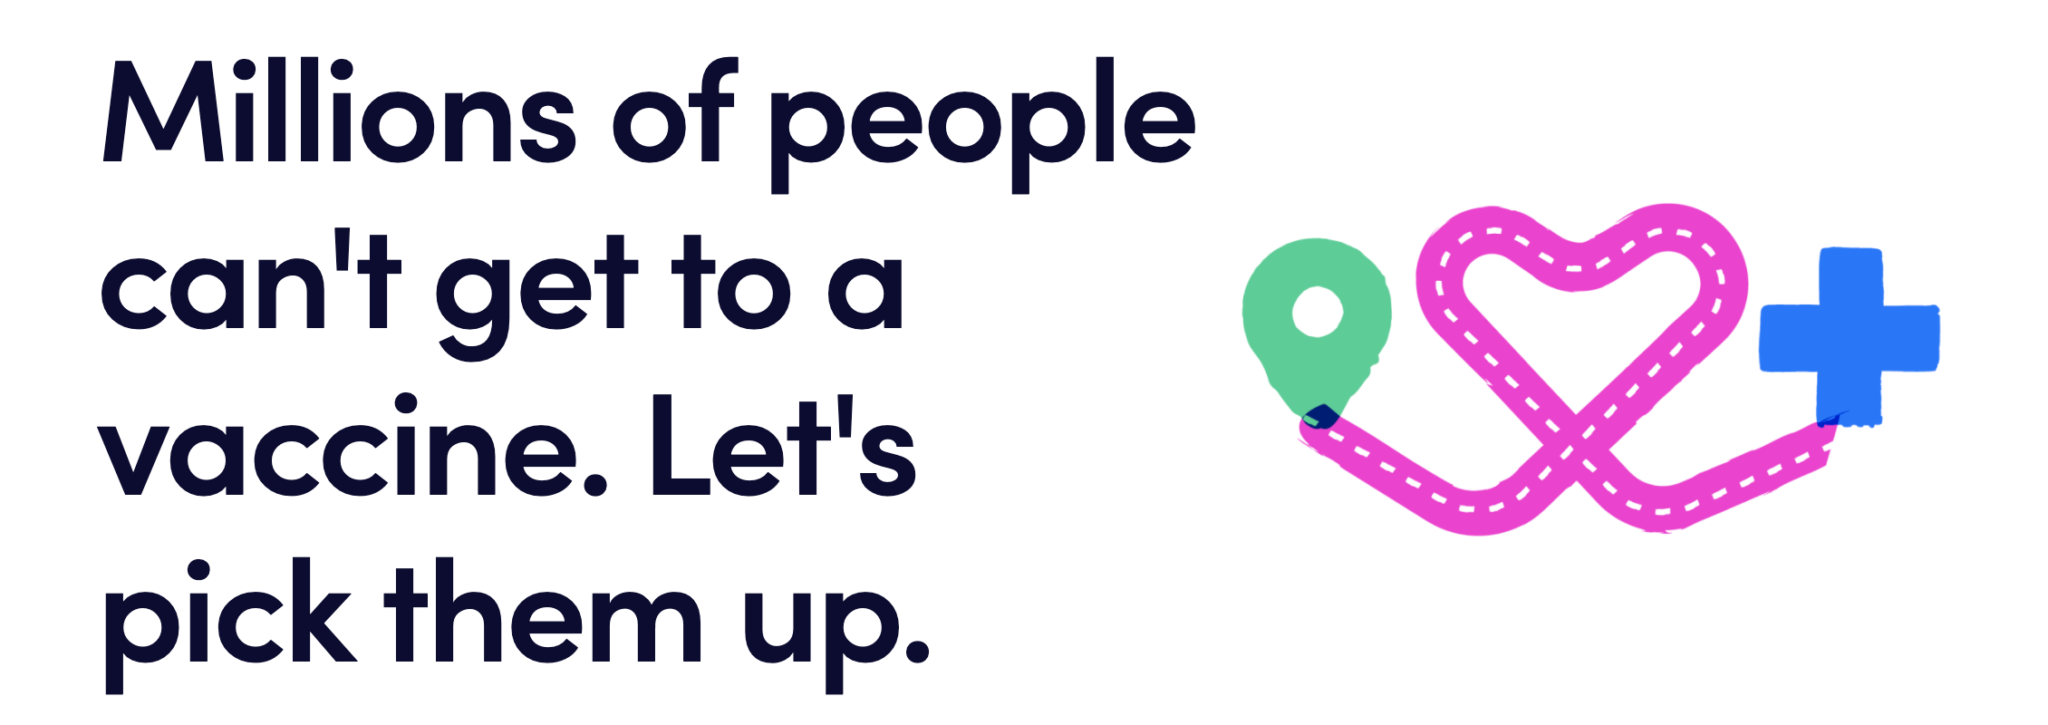 Promotional image of Lyft's vaccine access program